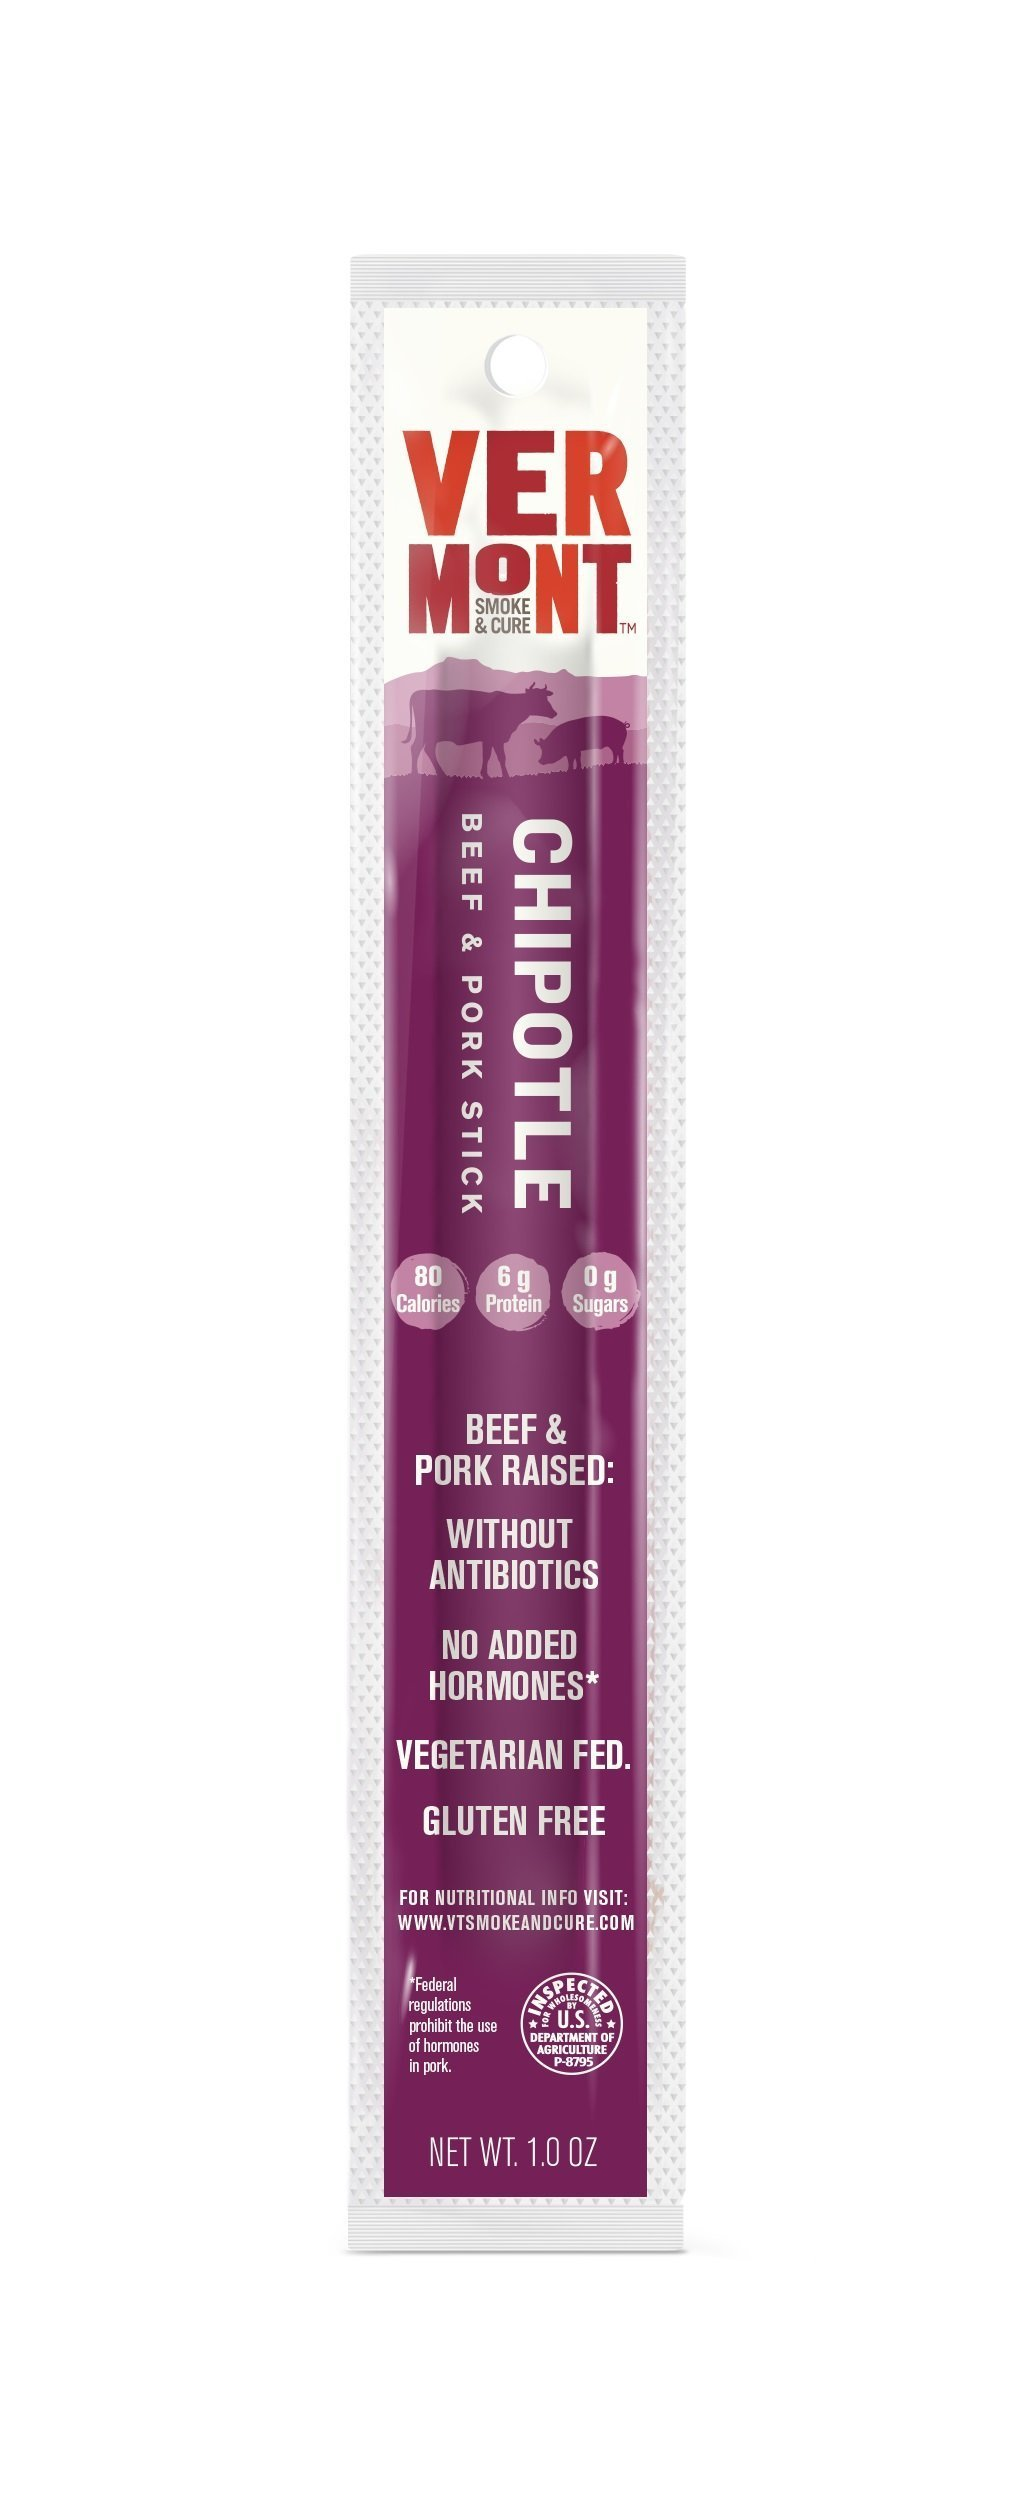 Vermont Smoke & Cure Meat Sticks, Beef & Pork, Antibiotic Free, Gluten Free, Chipotle, 1oz Stick, 24 Count by Vermont Smoke and Cure (Image #3)